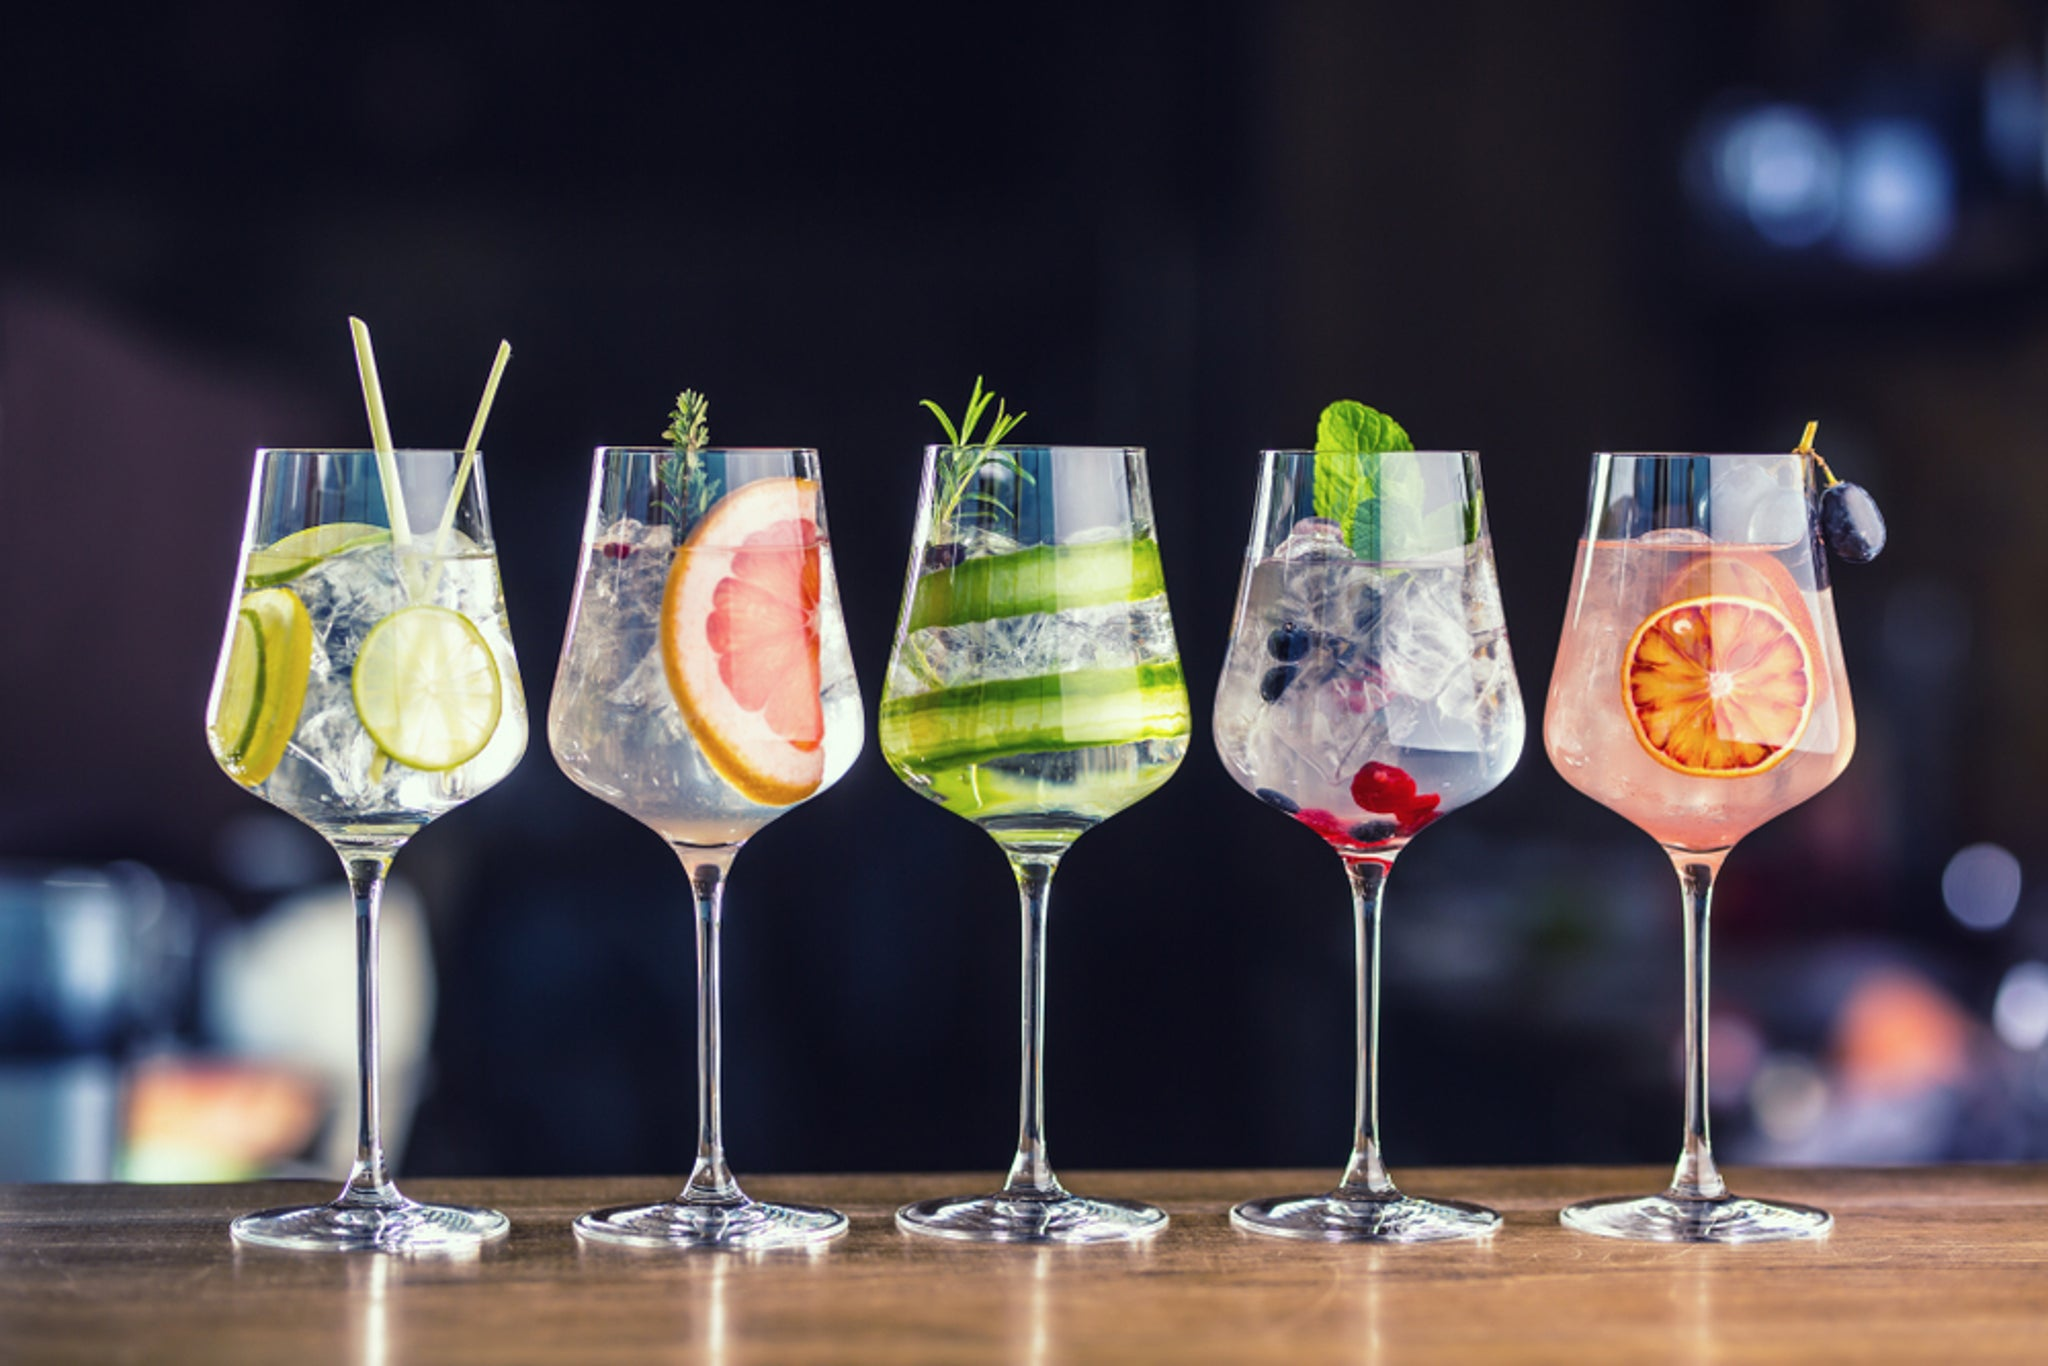 Martinis, G &ts, Negroni: How To Pick The Perfect Gin, However You Drink It photo